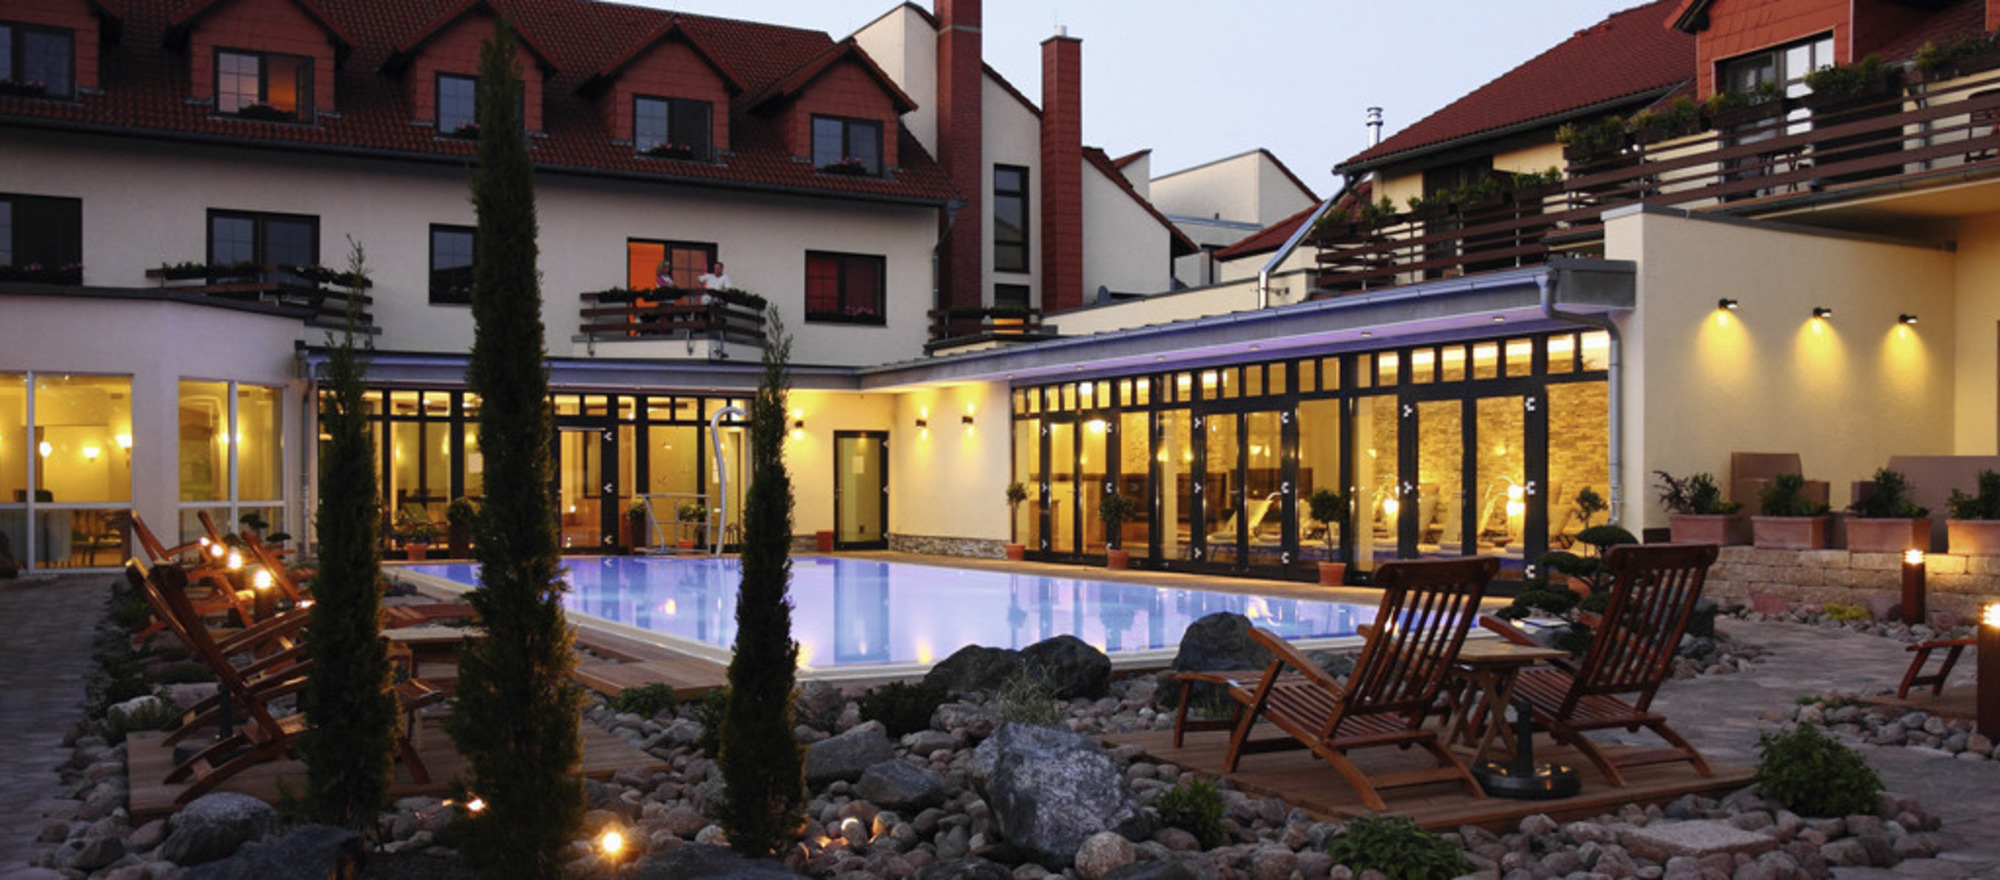 Evening mood at the outdoor pool in the 4-star hotel Ringhotel Zum Stein in Woerlitz